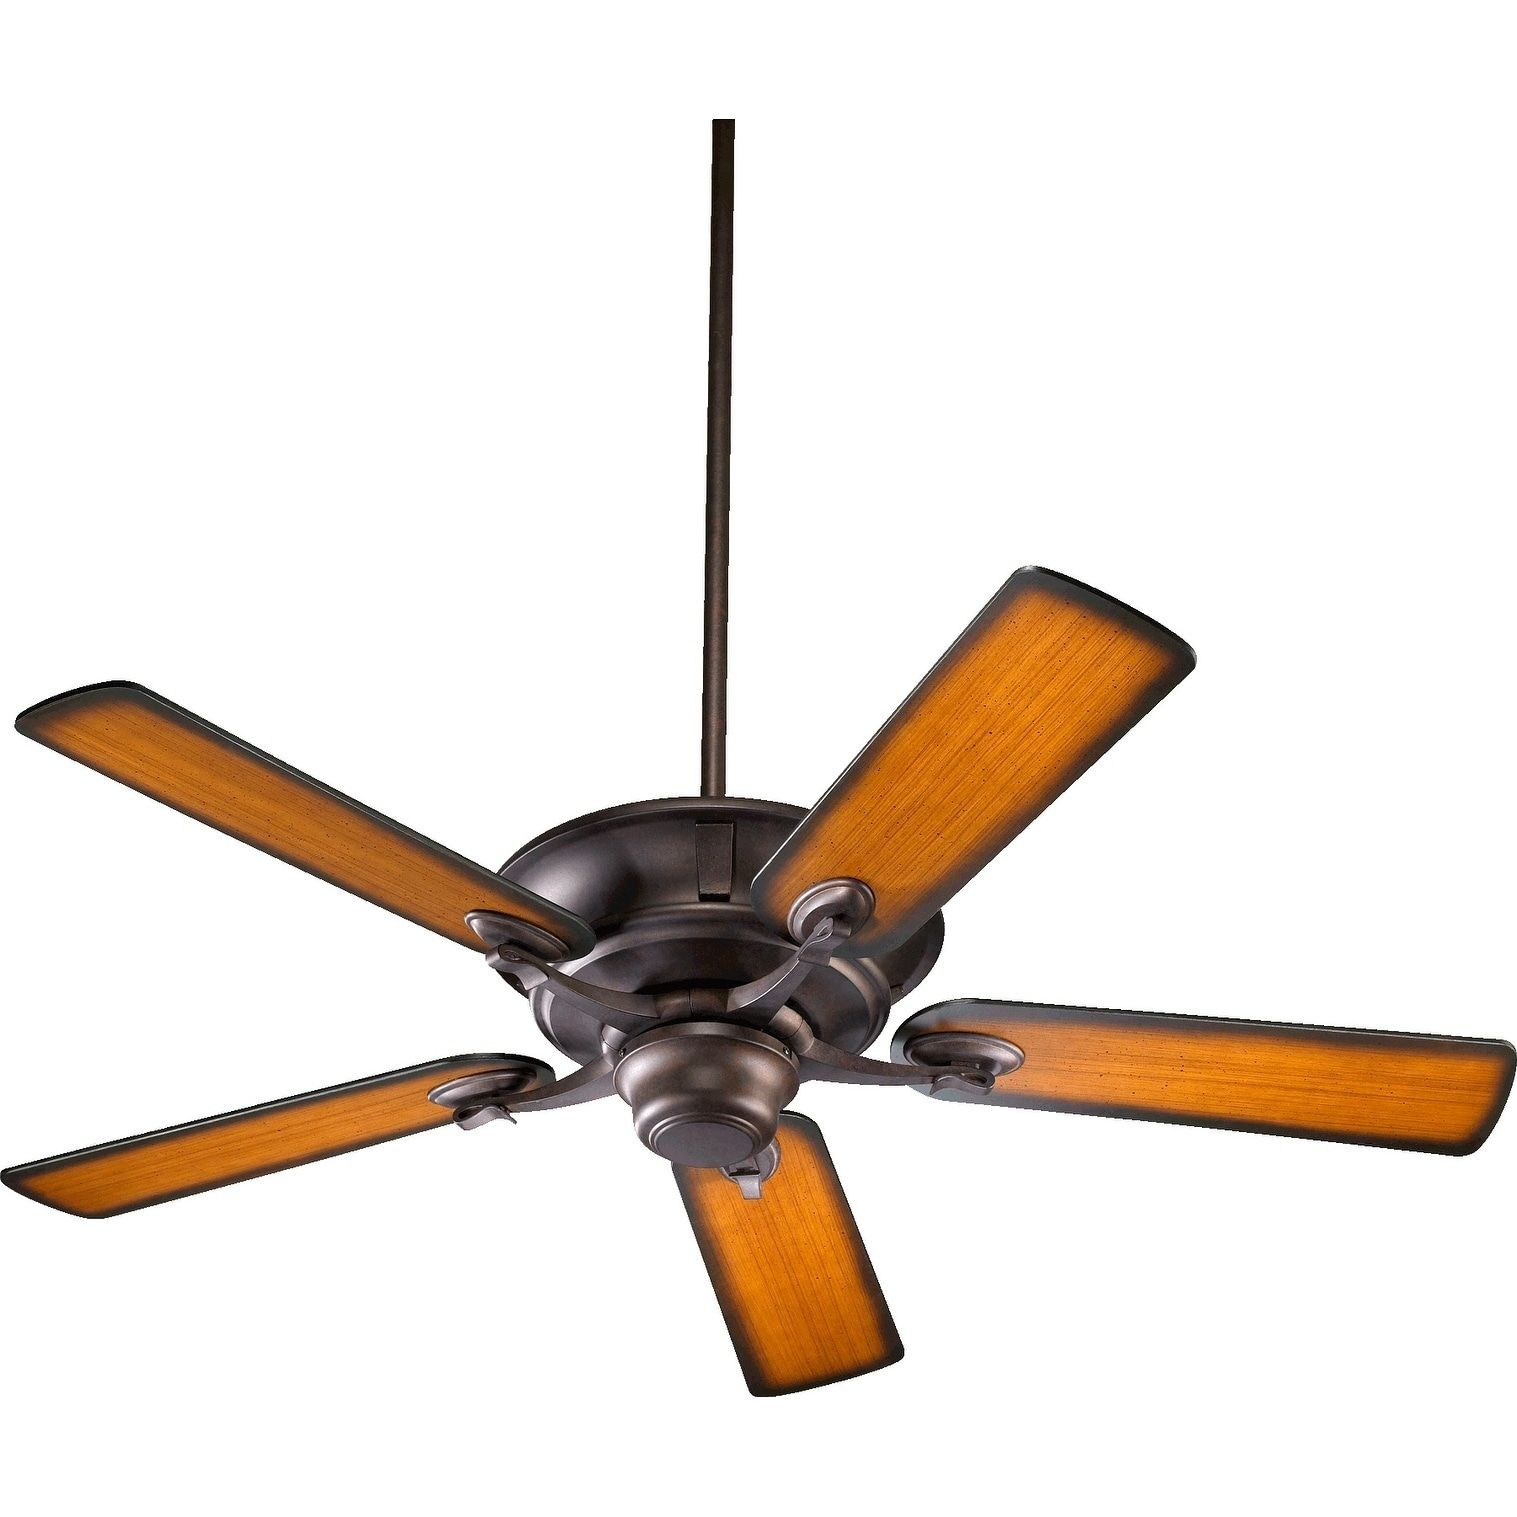 International Lowell 52 Transitional Ceiling Fan toasted sienna